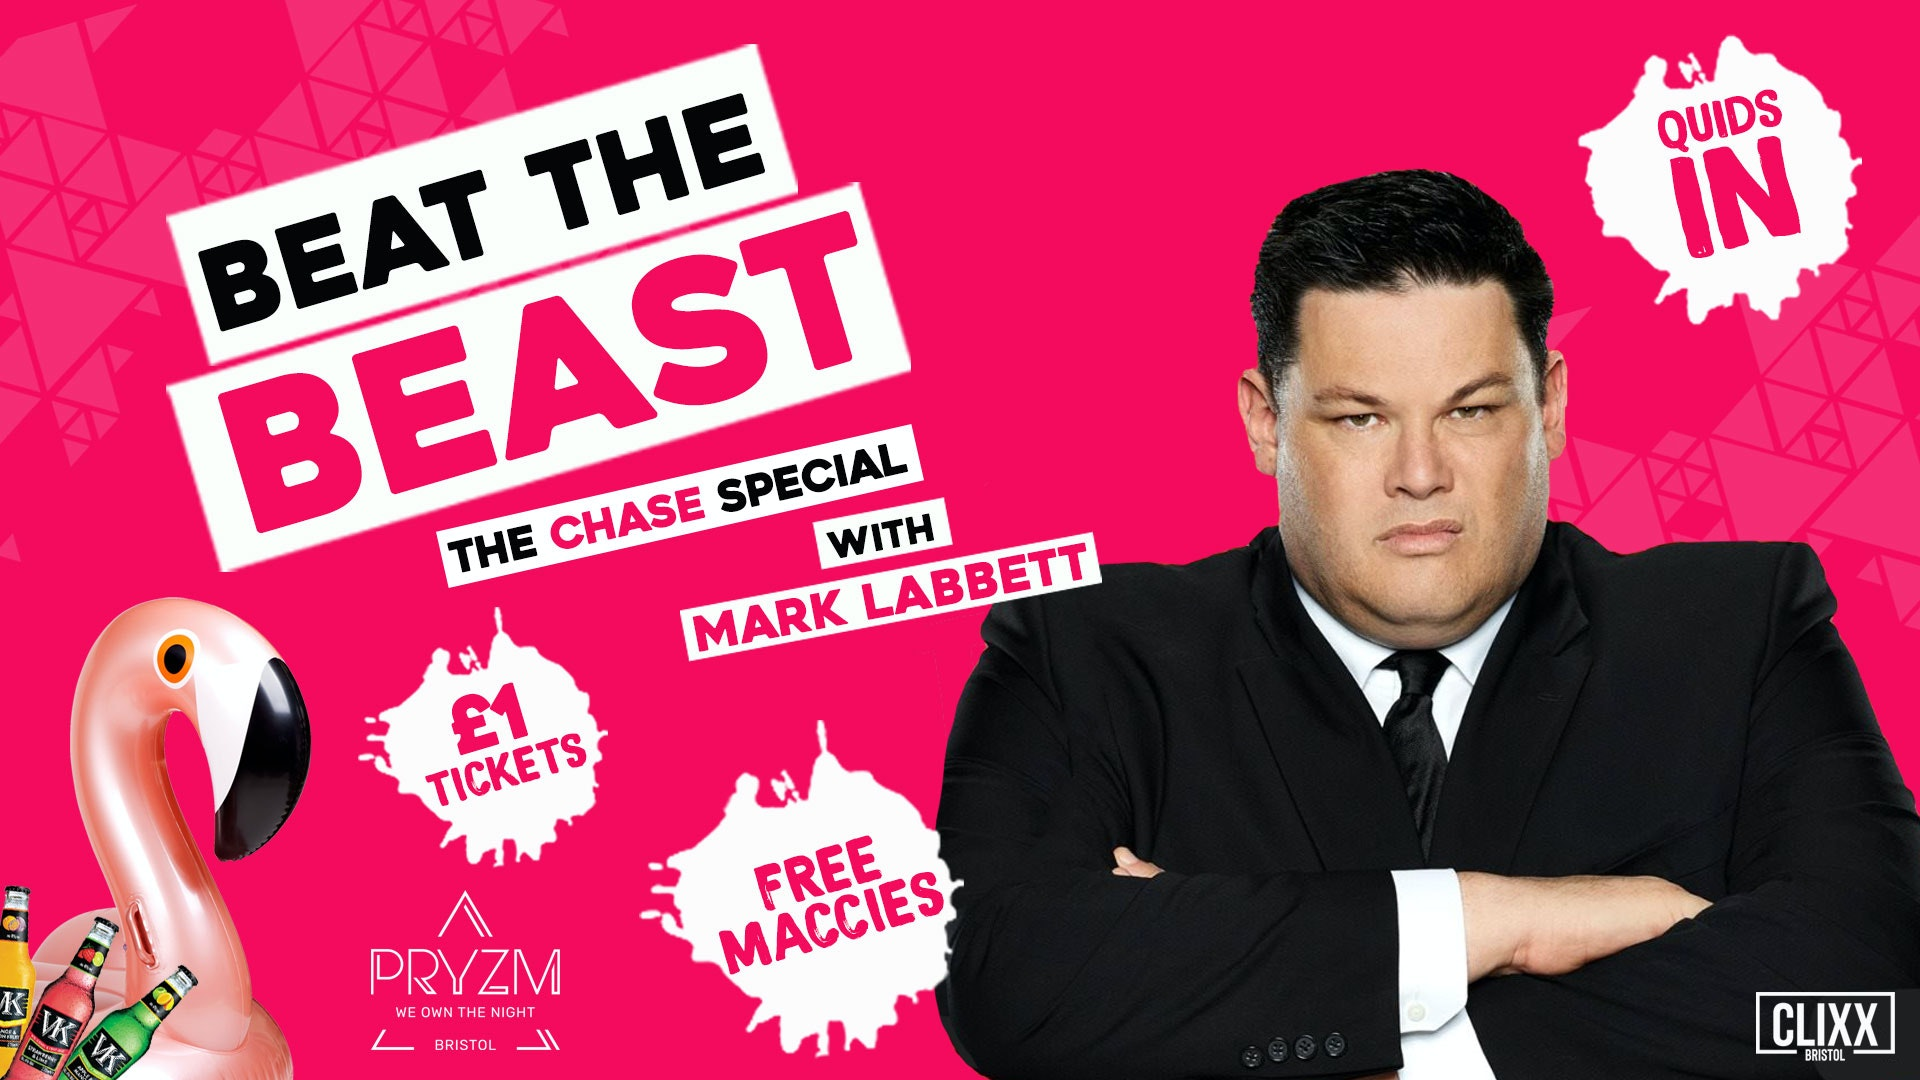 QUIDS IN w/ The Beast (The Chase) – £1 Tickets